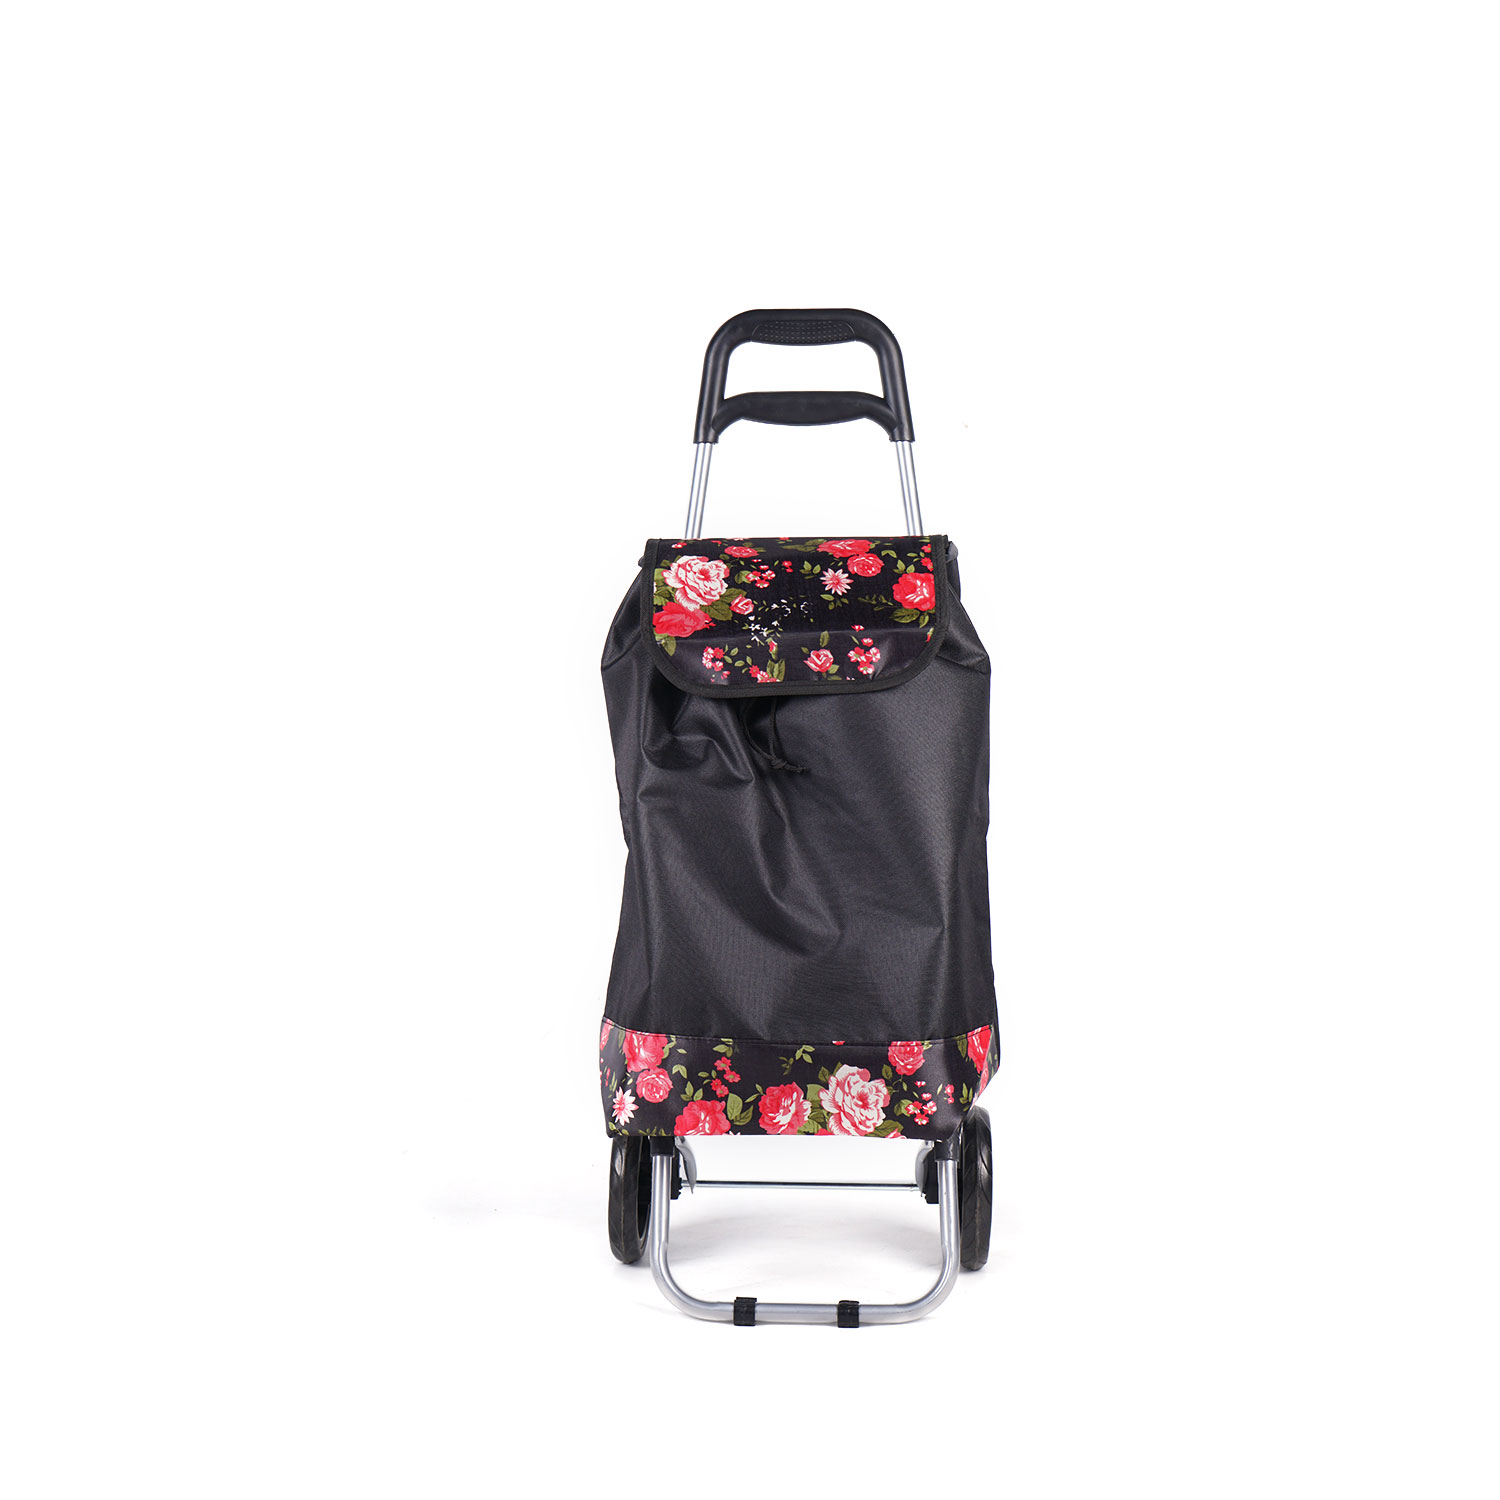 Customized folding personal shopping trolley bag used by old people shopping cart